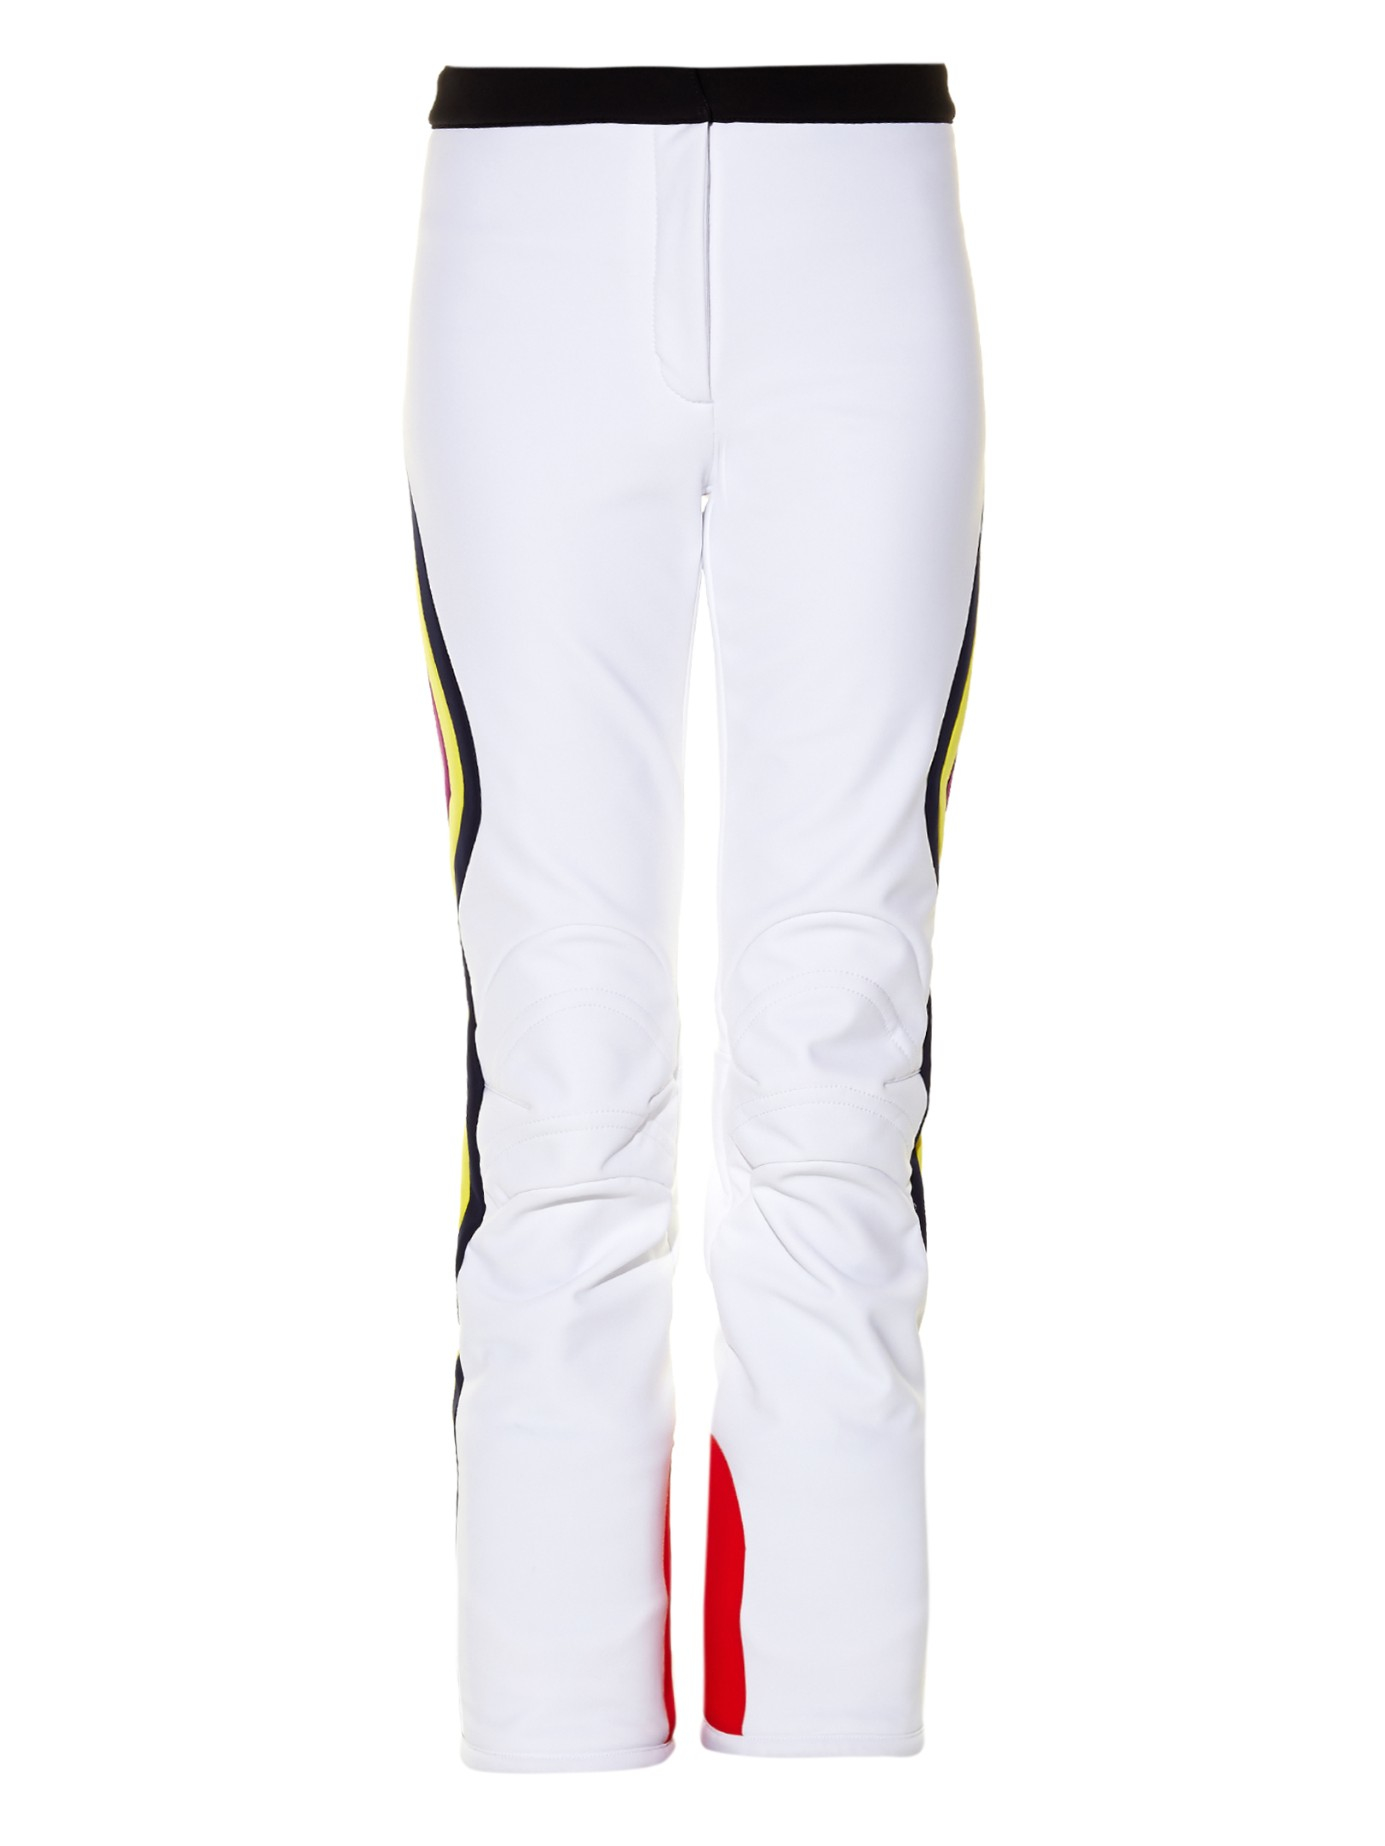 Free Shipping Extremely Cheap Real Authentic Fendi side striped trousers Clearance 100% Original Perfect Online Clearance Explore 4b5DK